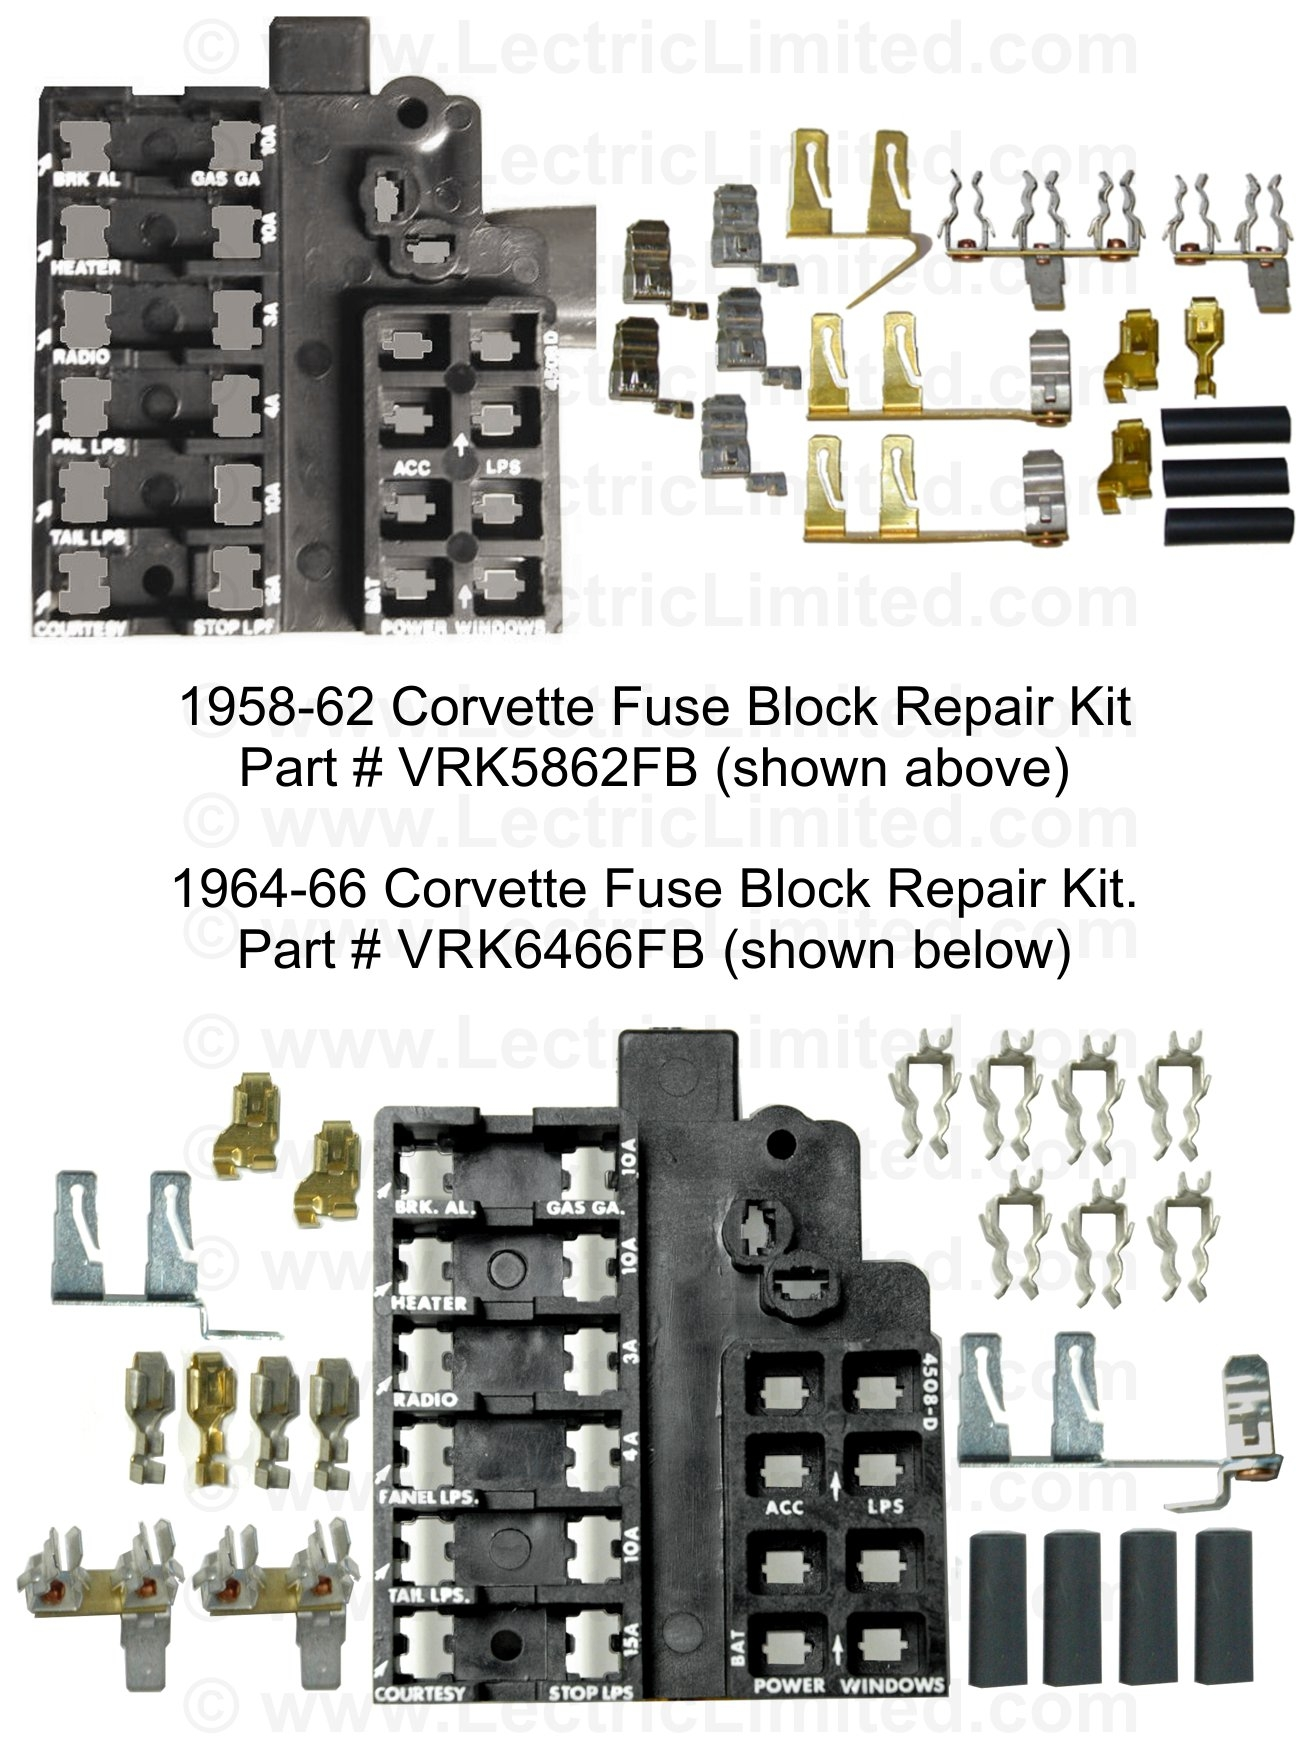 Repair Components Modern Fuse Box Block Kit